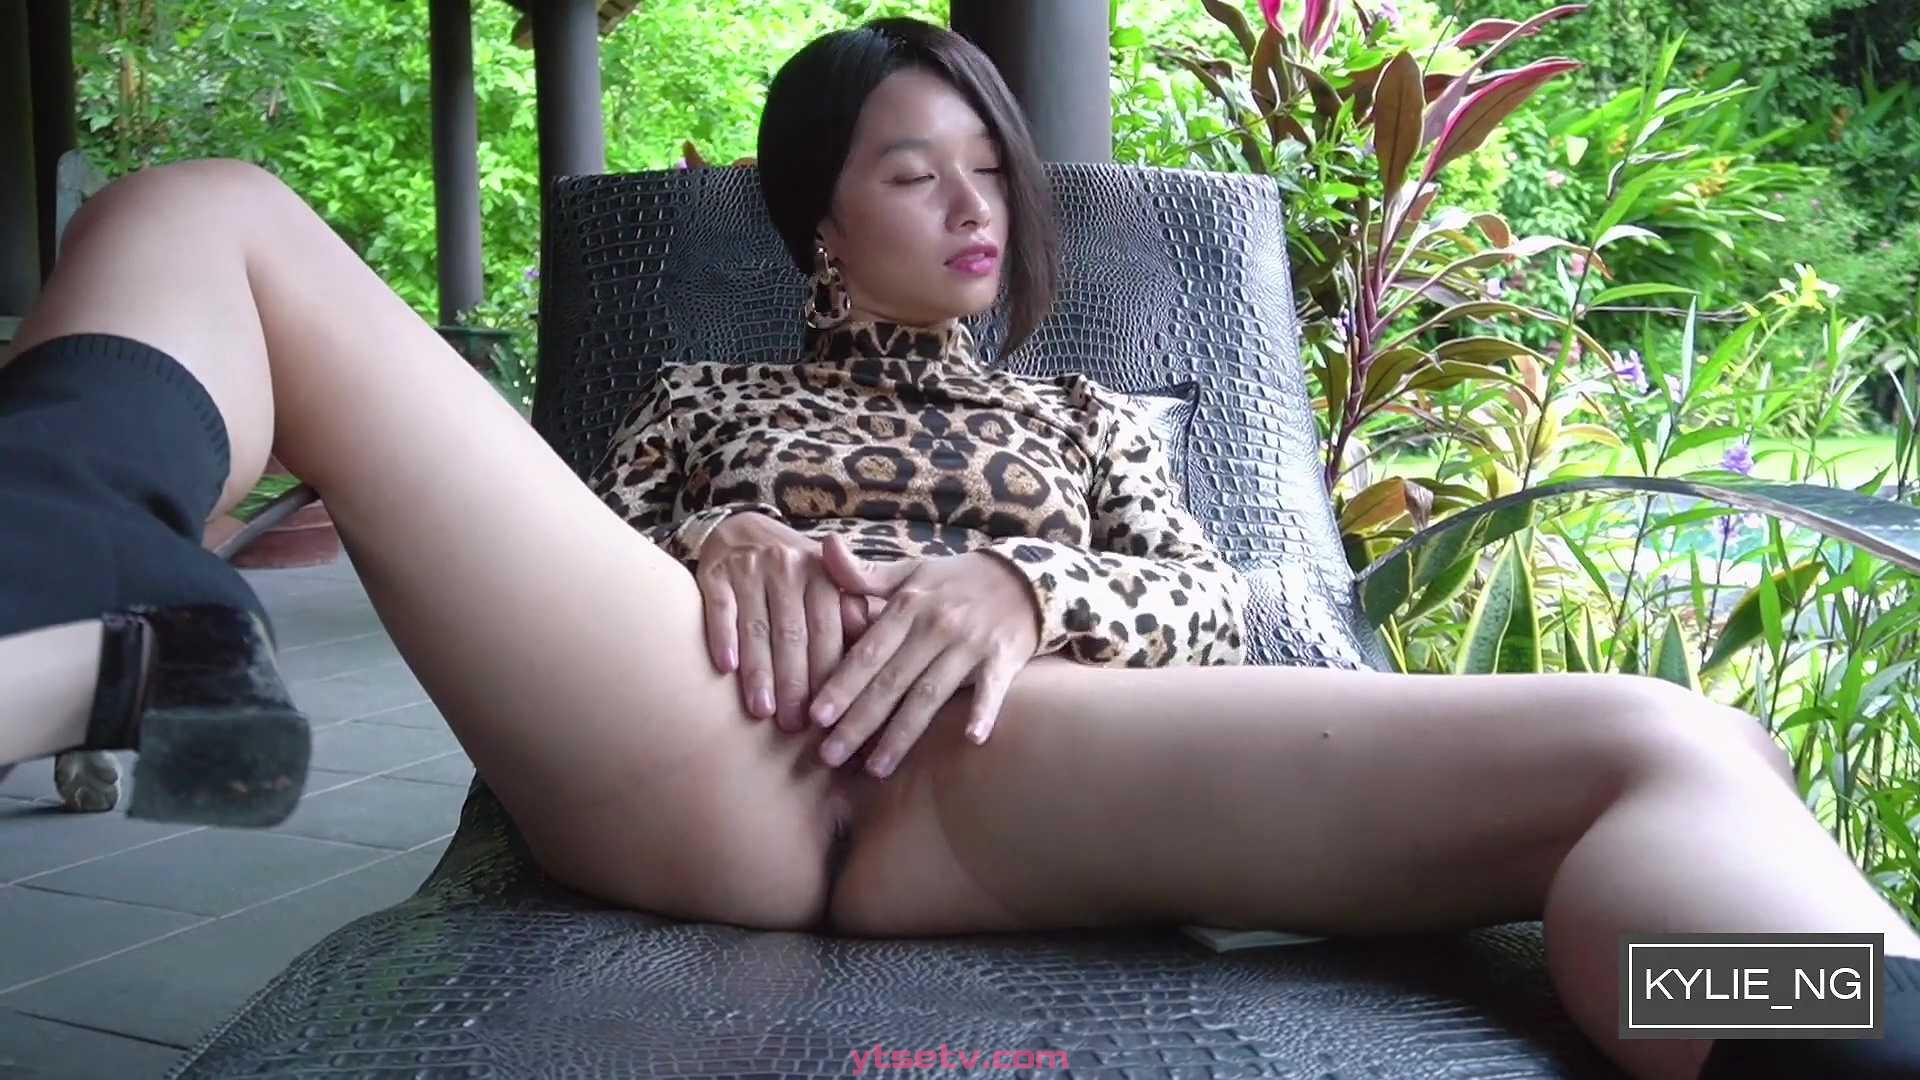 010 Gorgeous Asian Girl gets Extremely Outdoor Squirting Orgasm